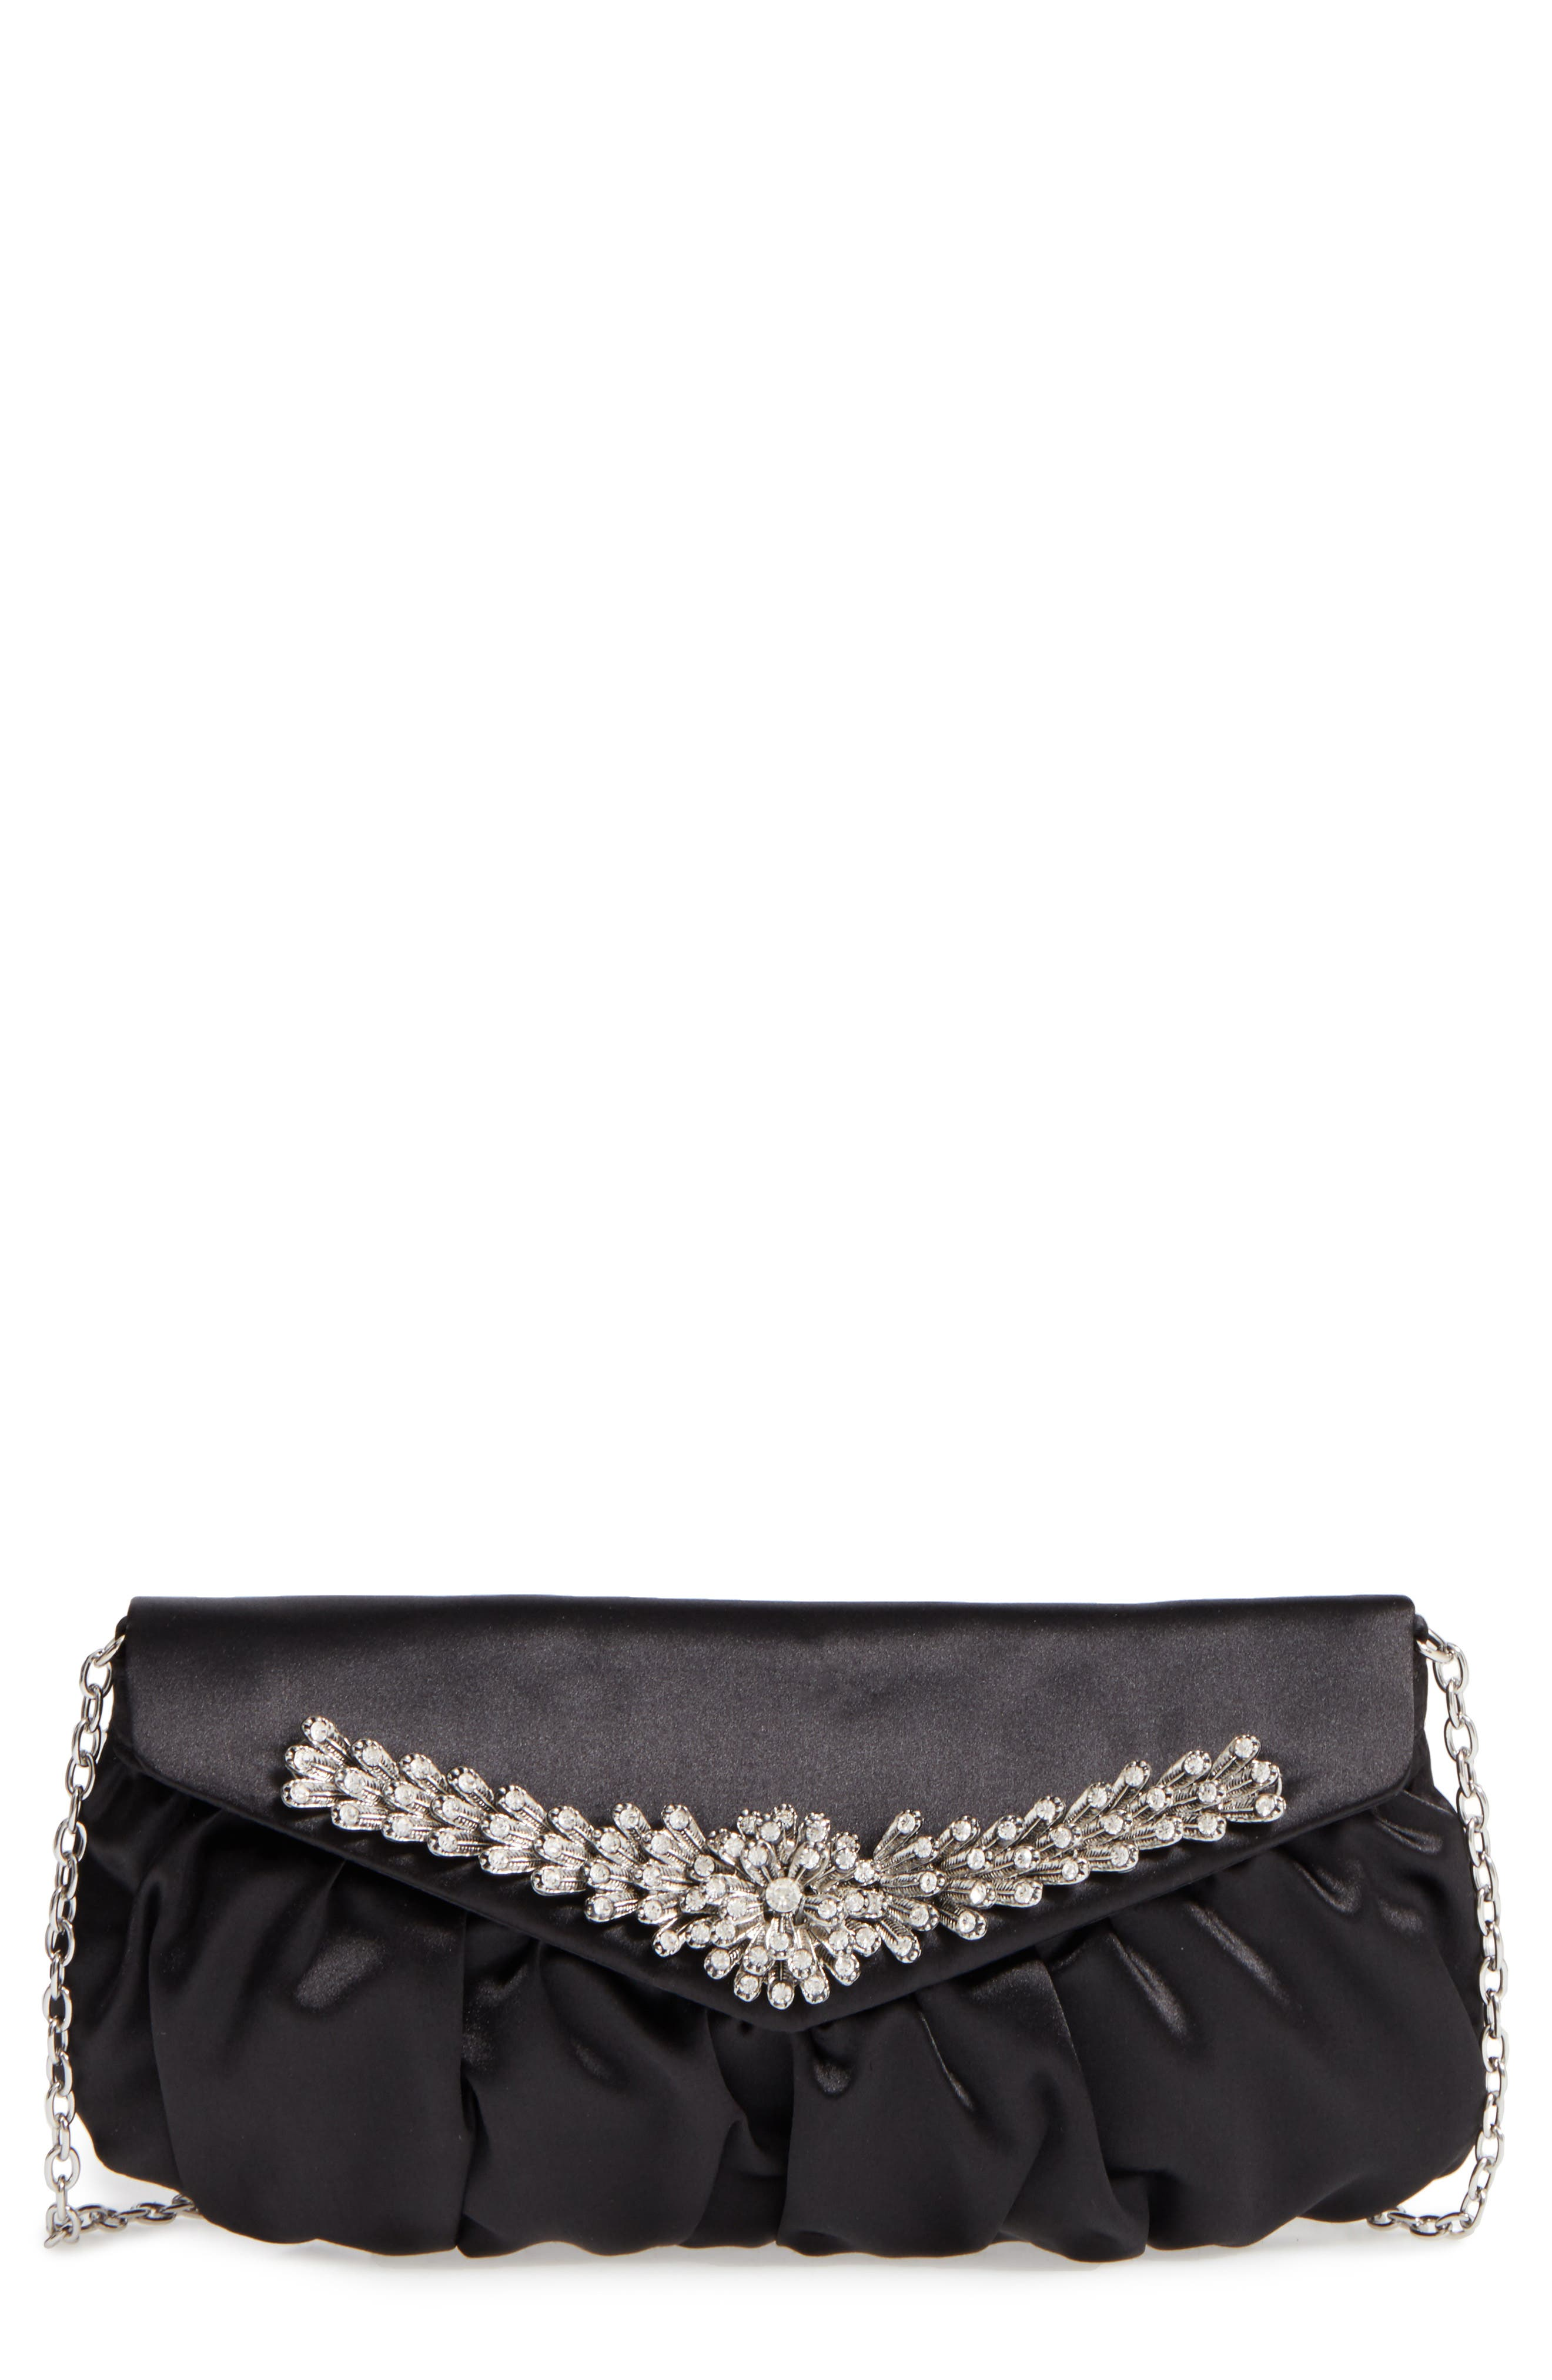 Caracas Crystal Embellished Clutch,                             Main thumbnail 1, color,                             001